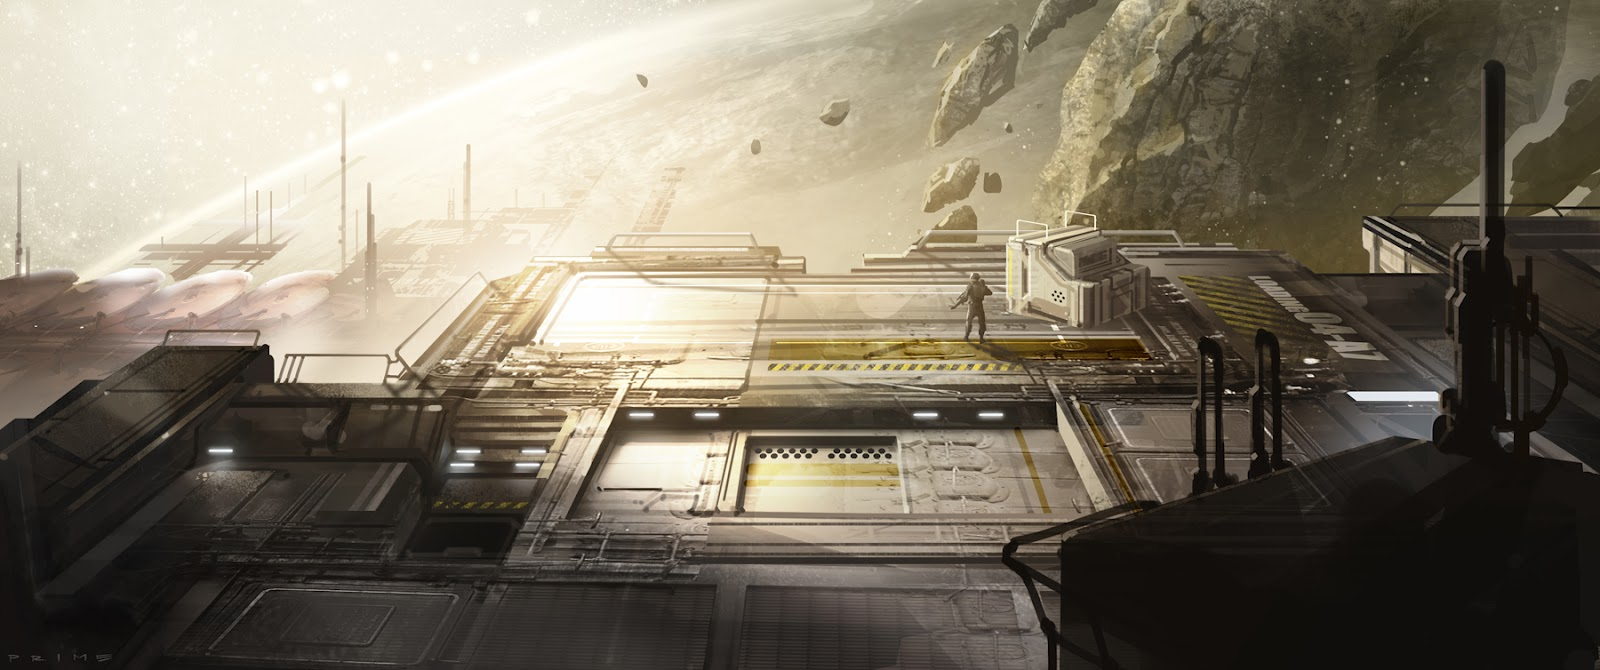 Warhouse map halo 4 artwork